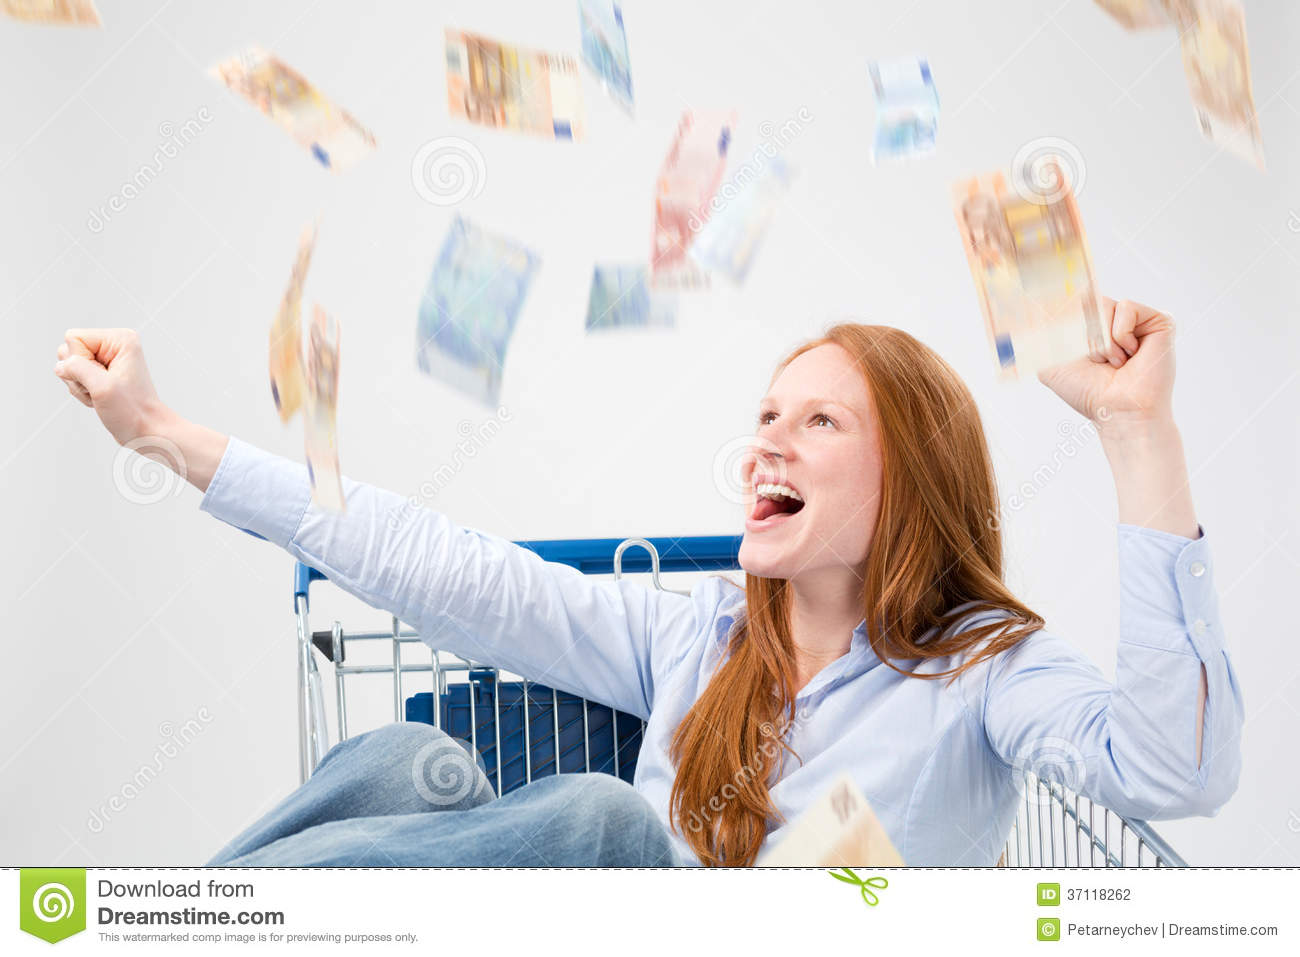 Money Falling Over a Happy Woman